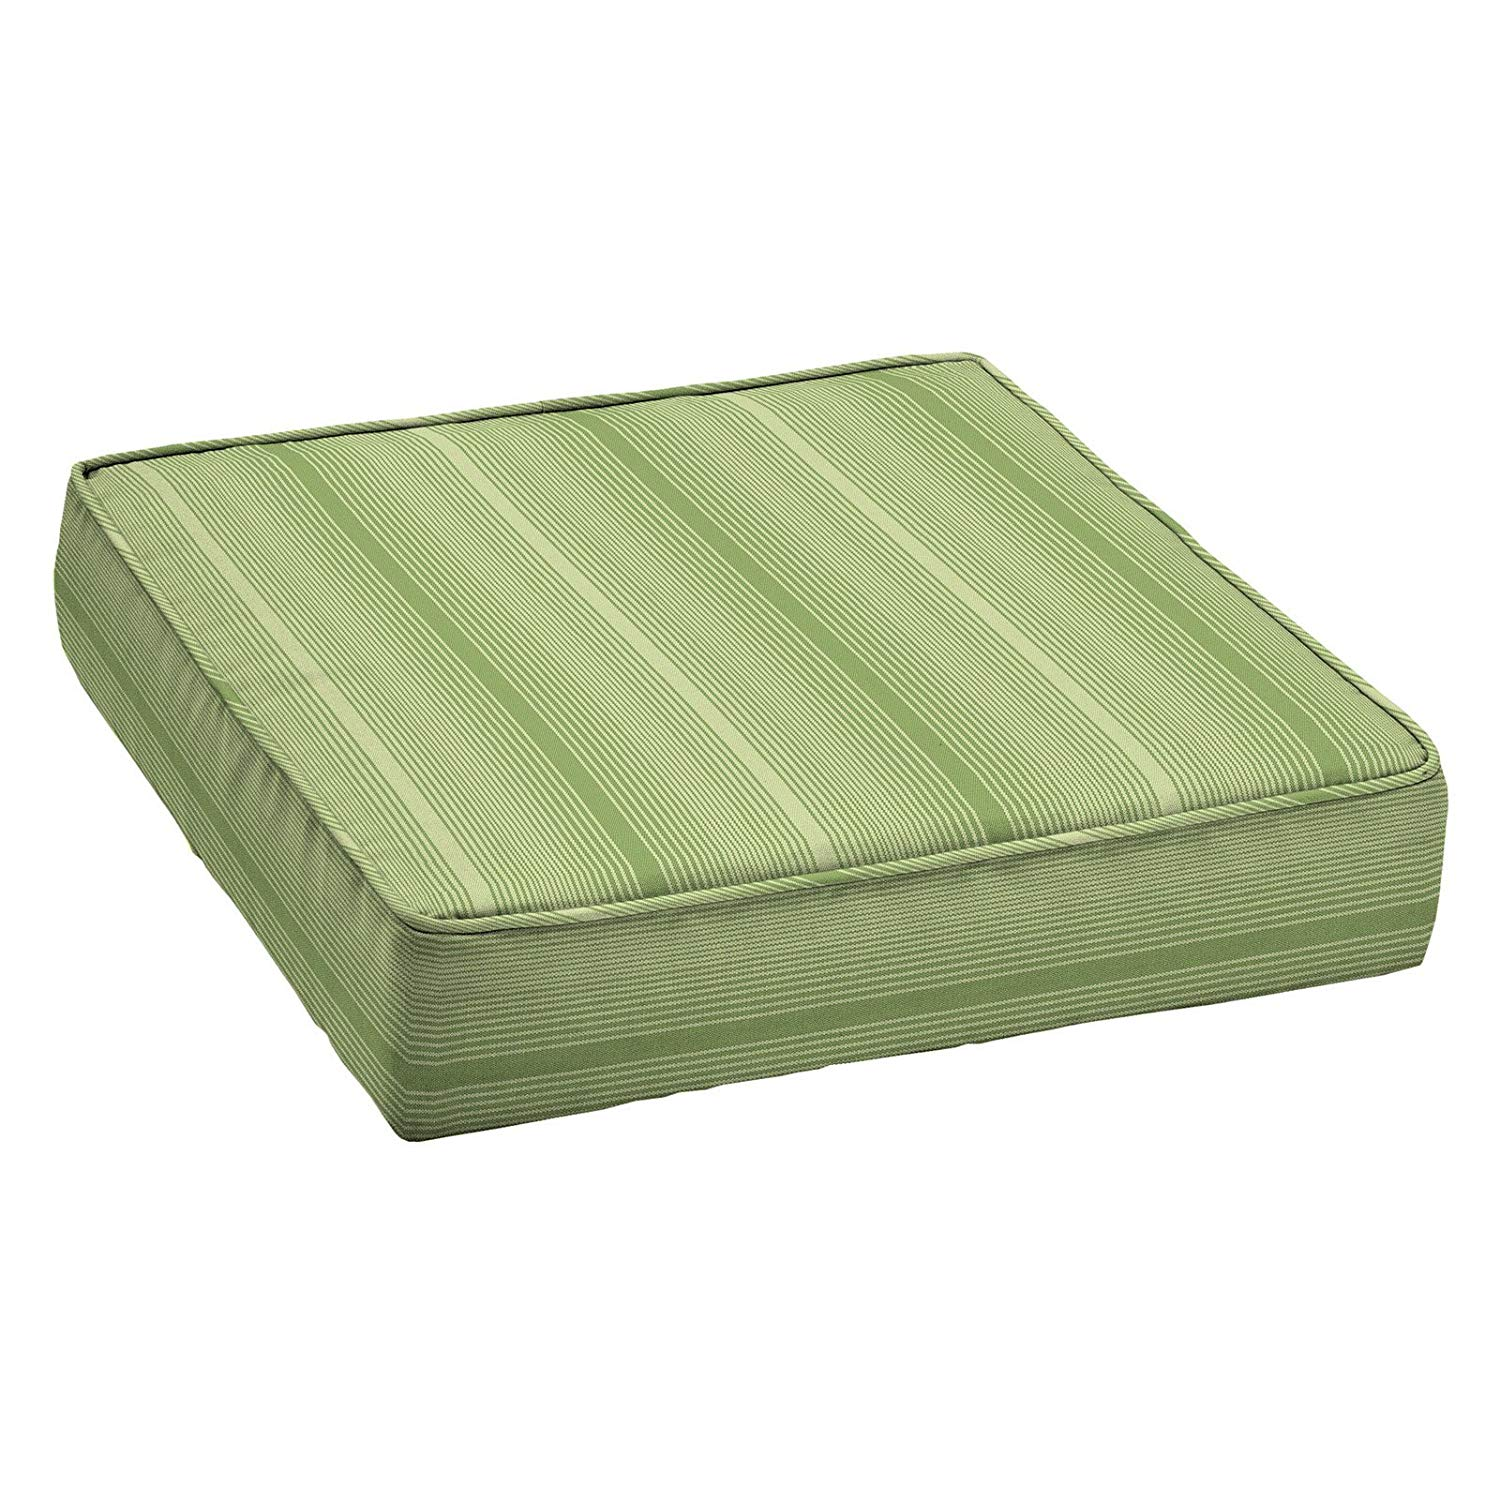 Home Improvements Green Stripe Premium Acrylic 24 x 24 Outdoor Deep Seat Cushion Patio Deep Seating Chair Cushion